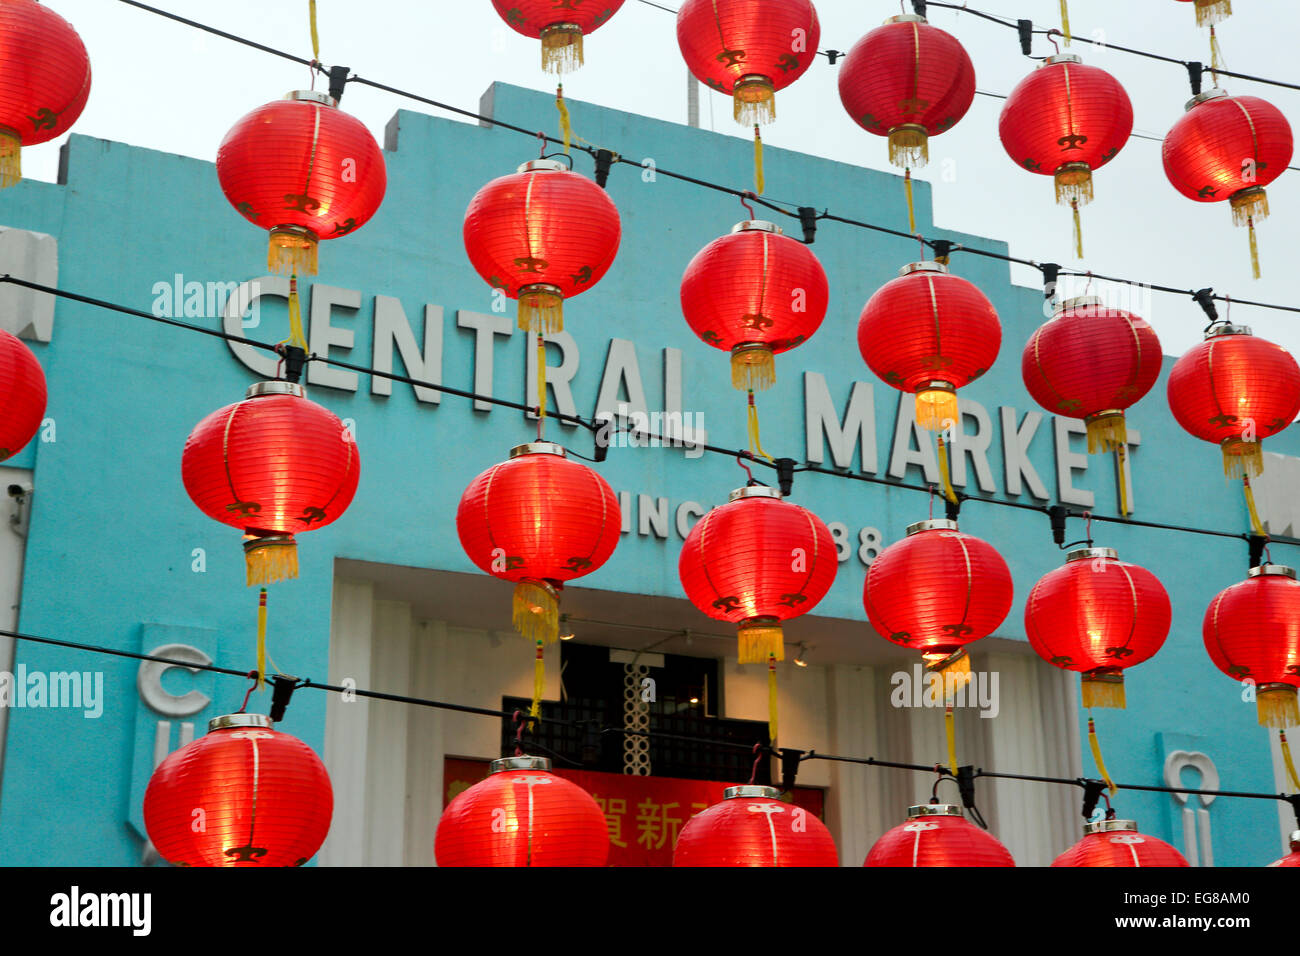 Red lanterns hanging outside the Central Market in Chinatown for Chinese New Year celebrations - Stock Image